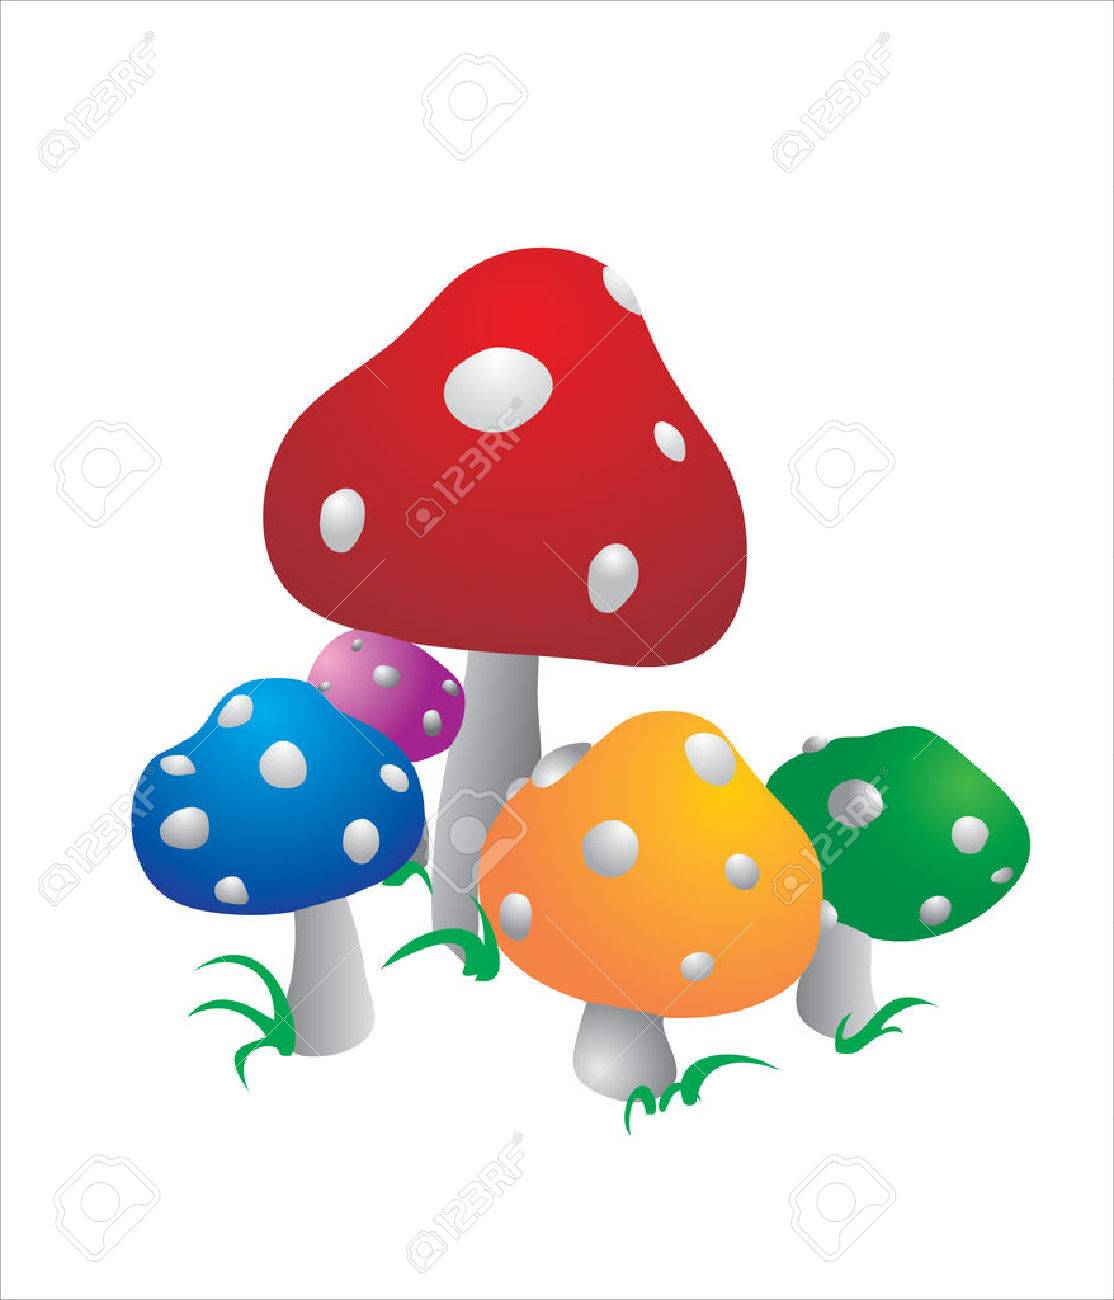 Five Multi Colored Color Mushrooms Royalty Free Cliparts Vectors